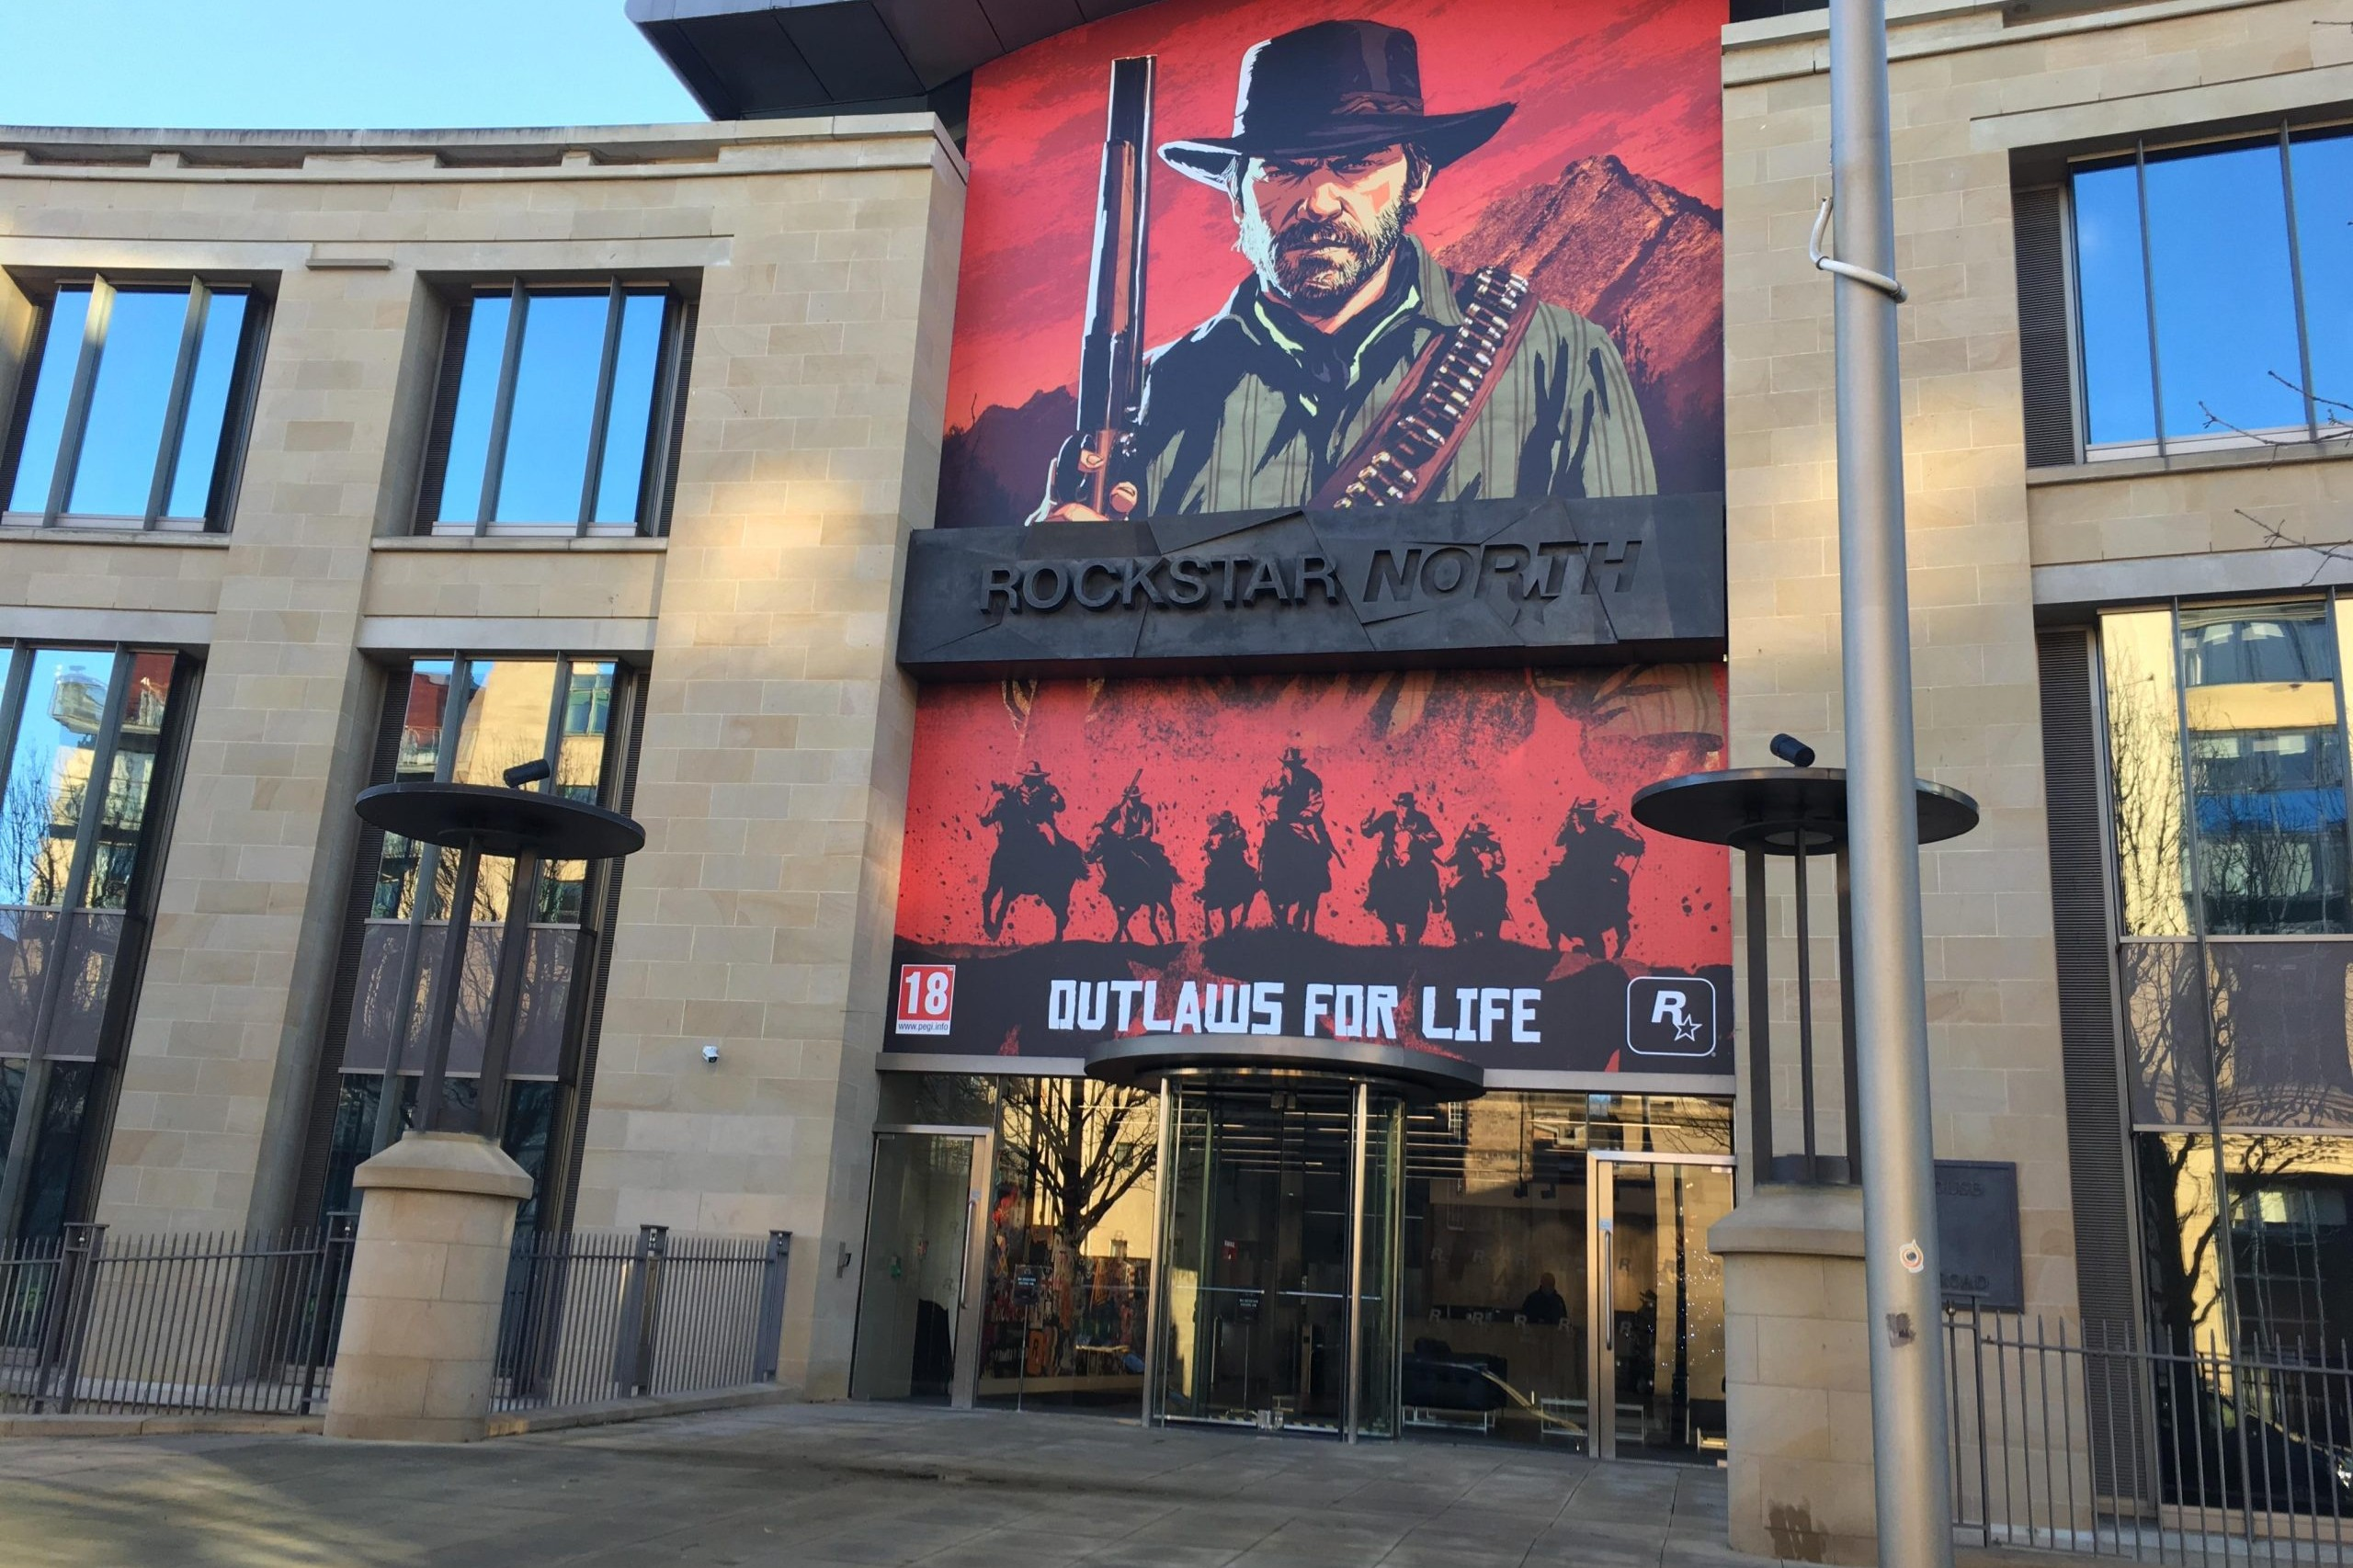 Studio Rockstar North